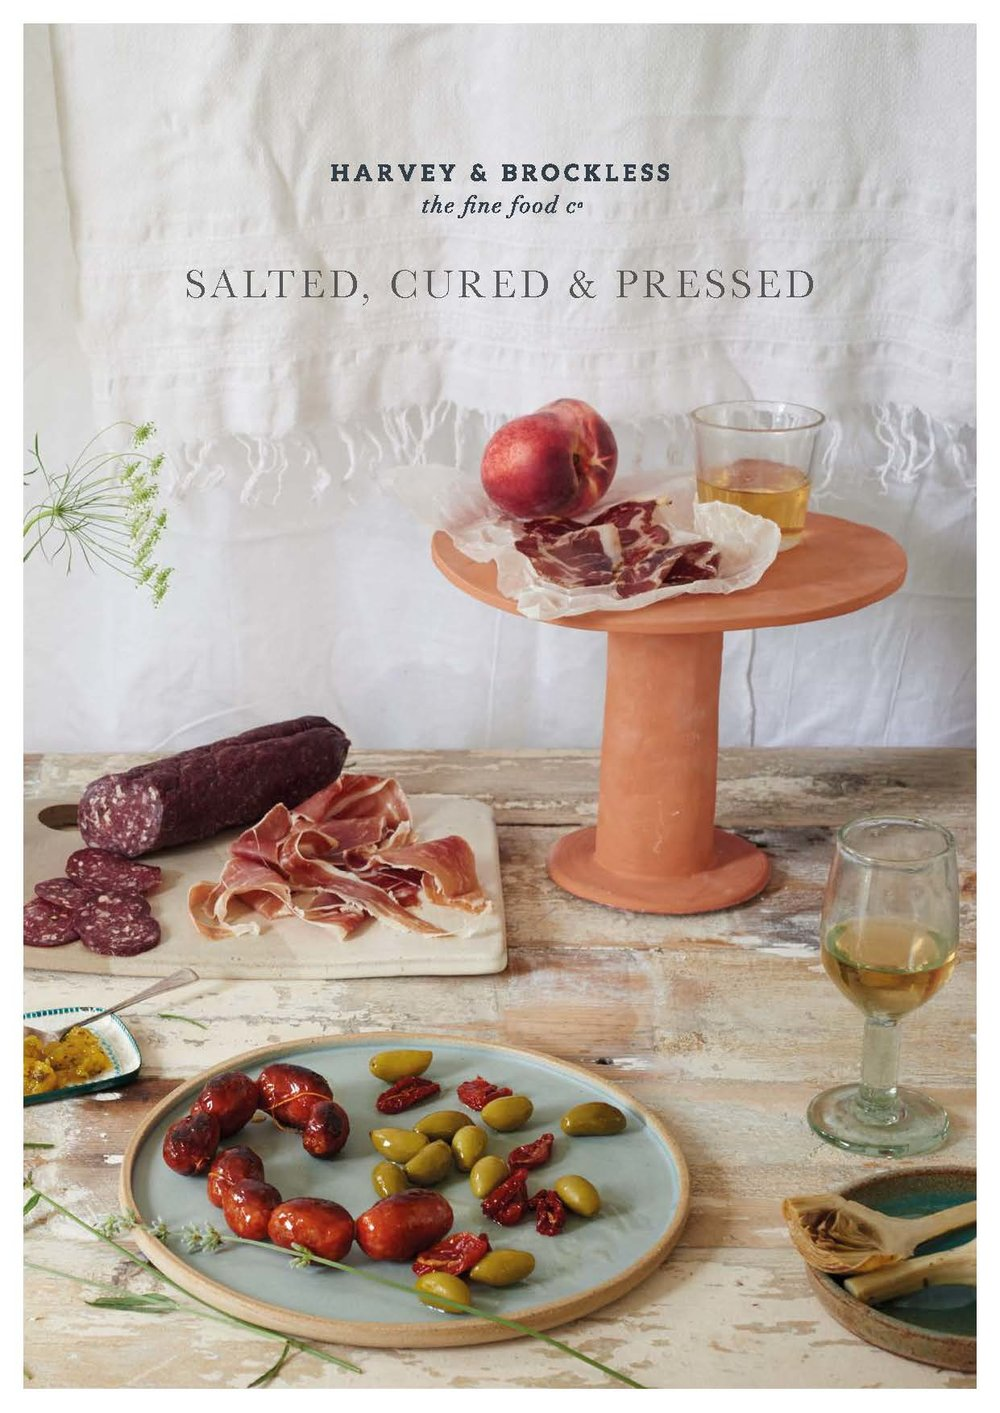 Salted, Cured and Pressed